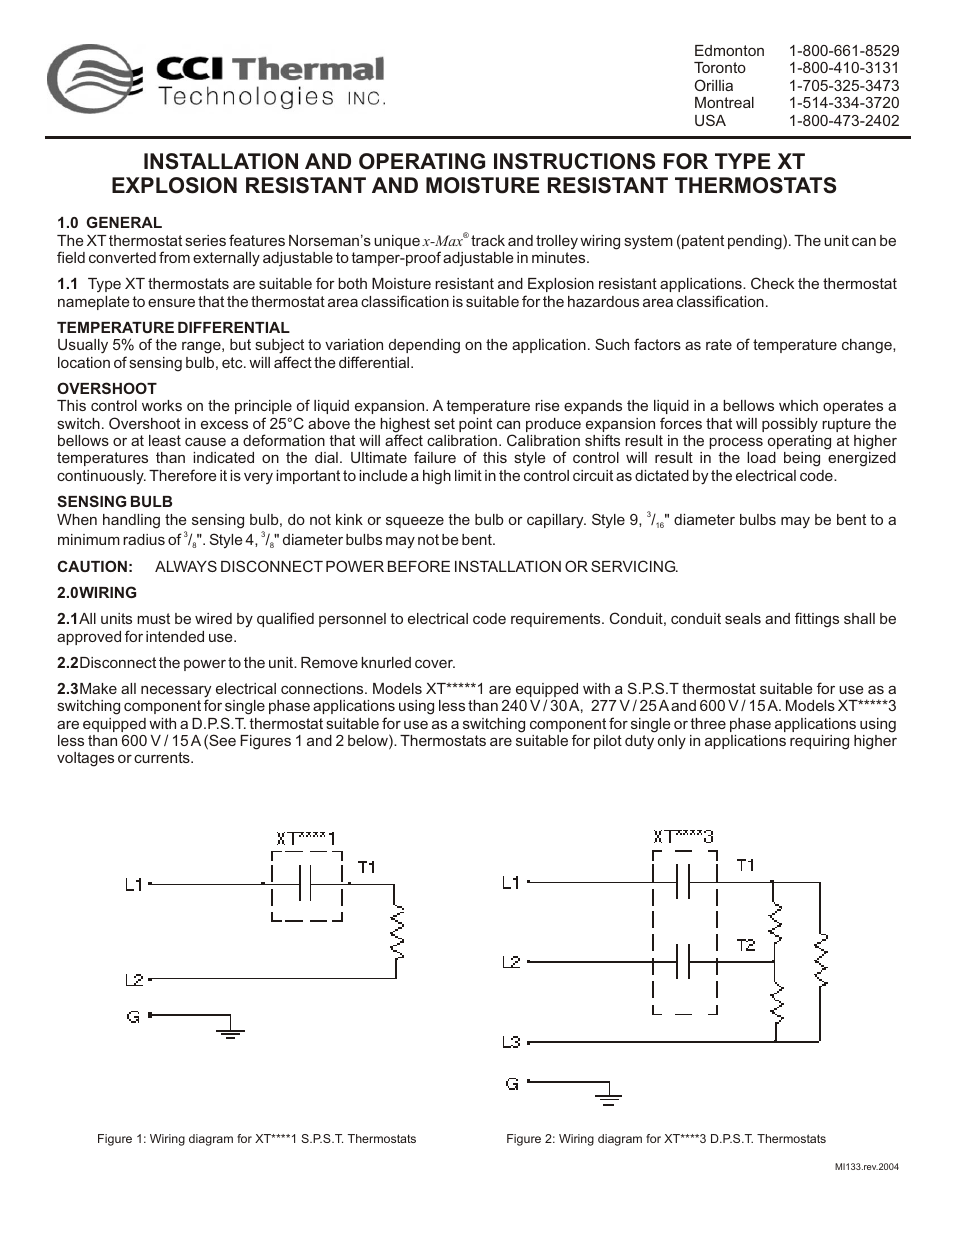 CCI Thermal Technologies XTK-12 - Thermostat Installation Kit (Process  Heating Applications) User Manual | 2 pages | Also for: XTK-04 - Thermostat  ...